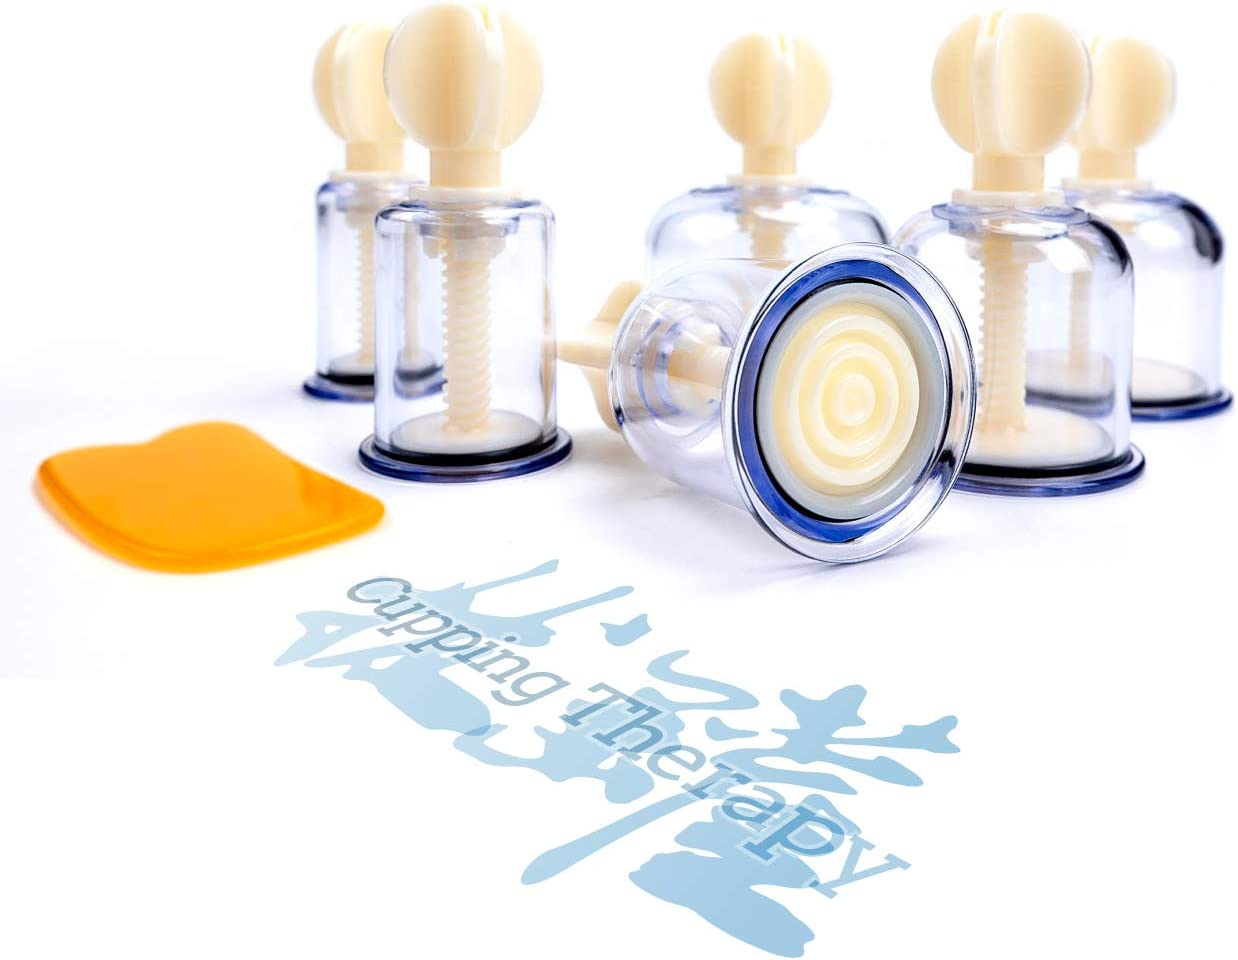 Professional Hand Twist Cupping Therapy Set, Rotary Chinese Acupuncture Enhanced Vacuum Cupping Device for Body Massage, Portable & Pump Free, Thicken & Durable - 6 Cups